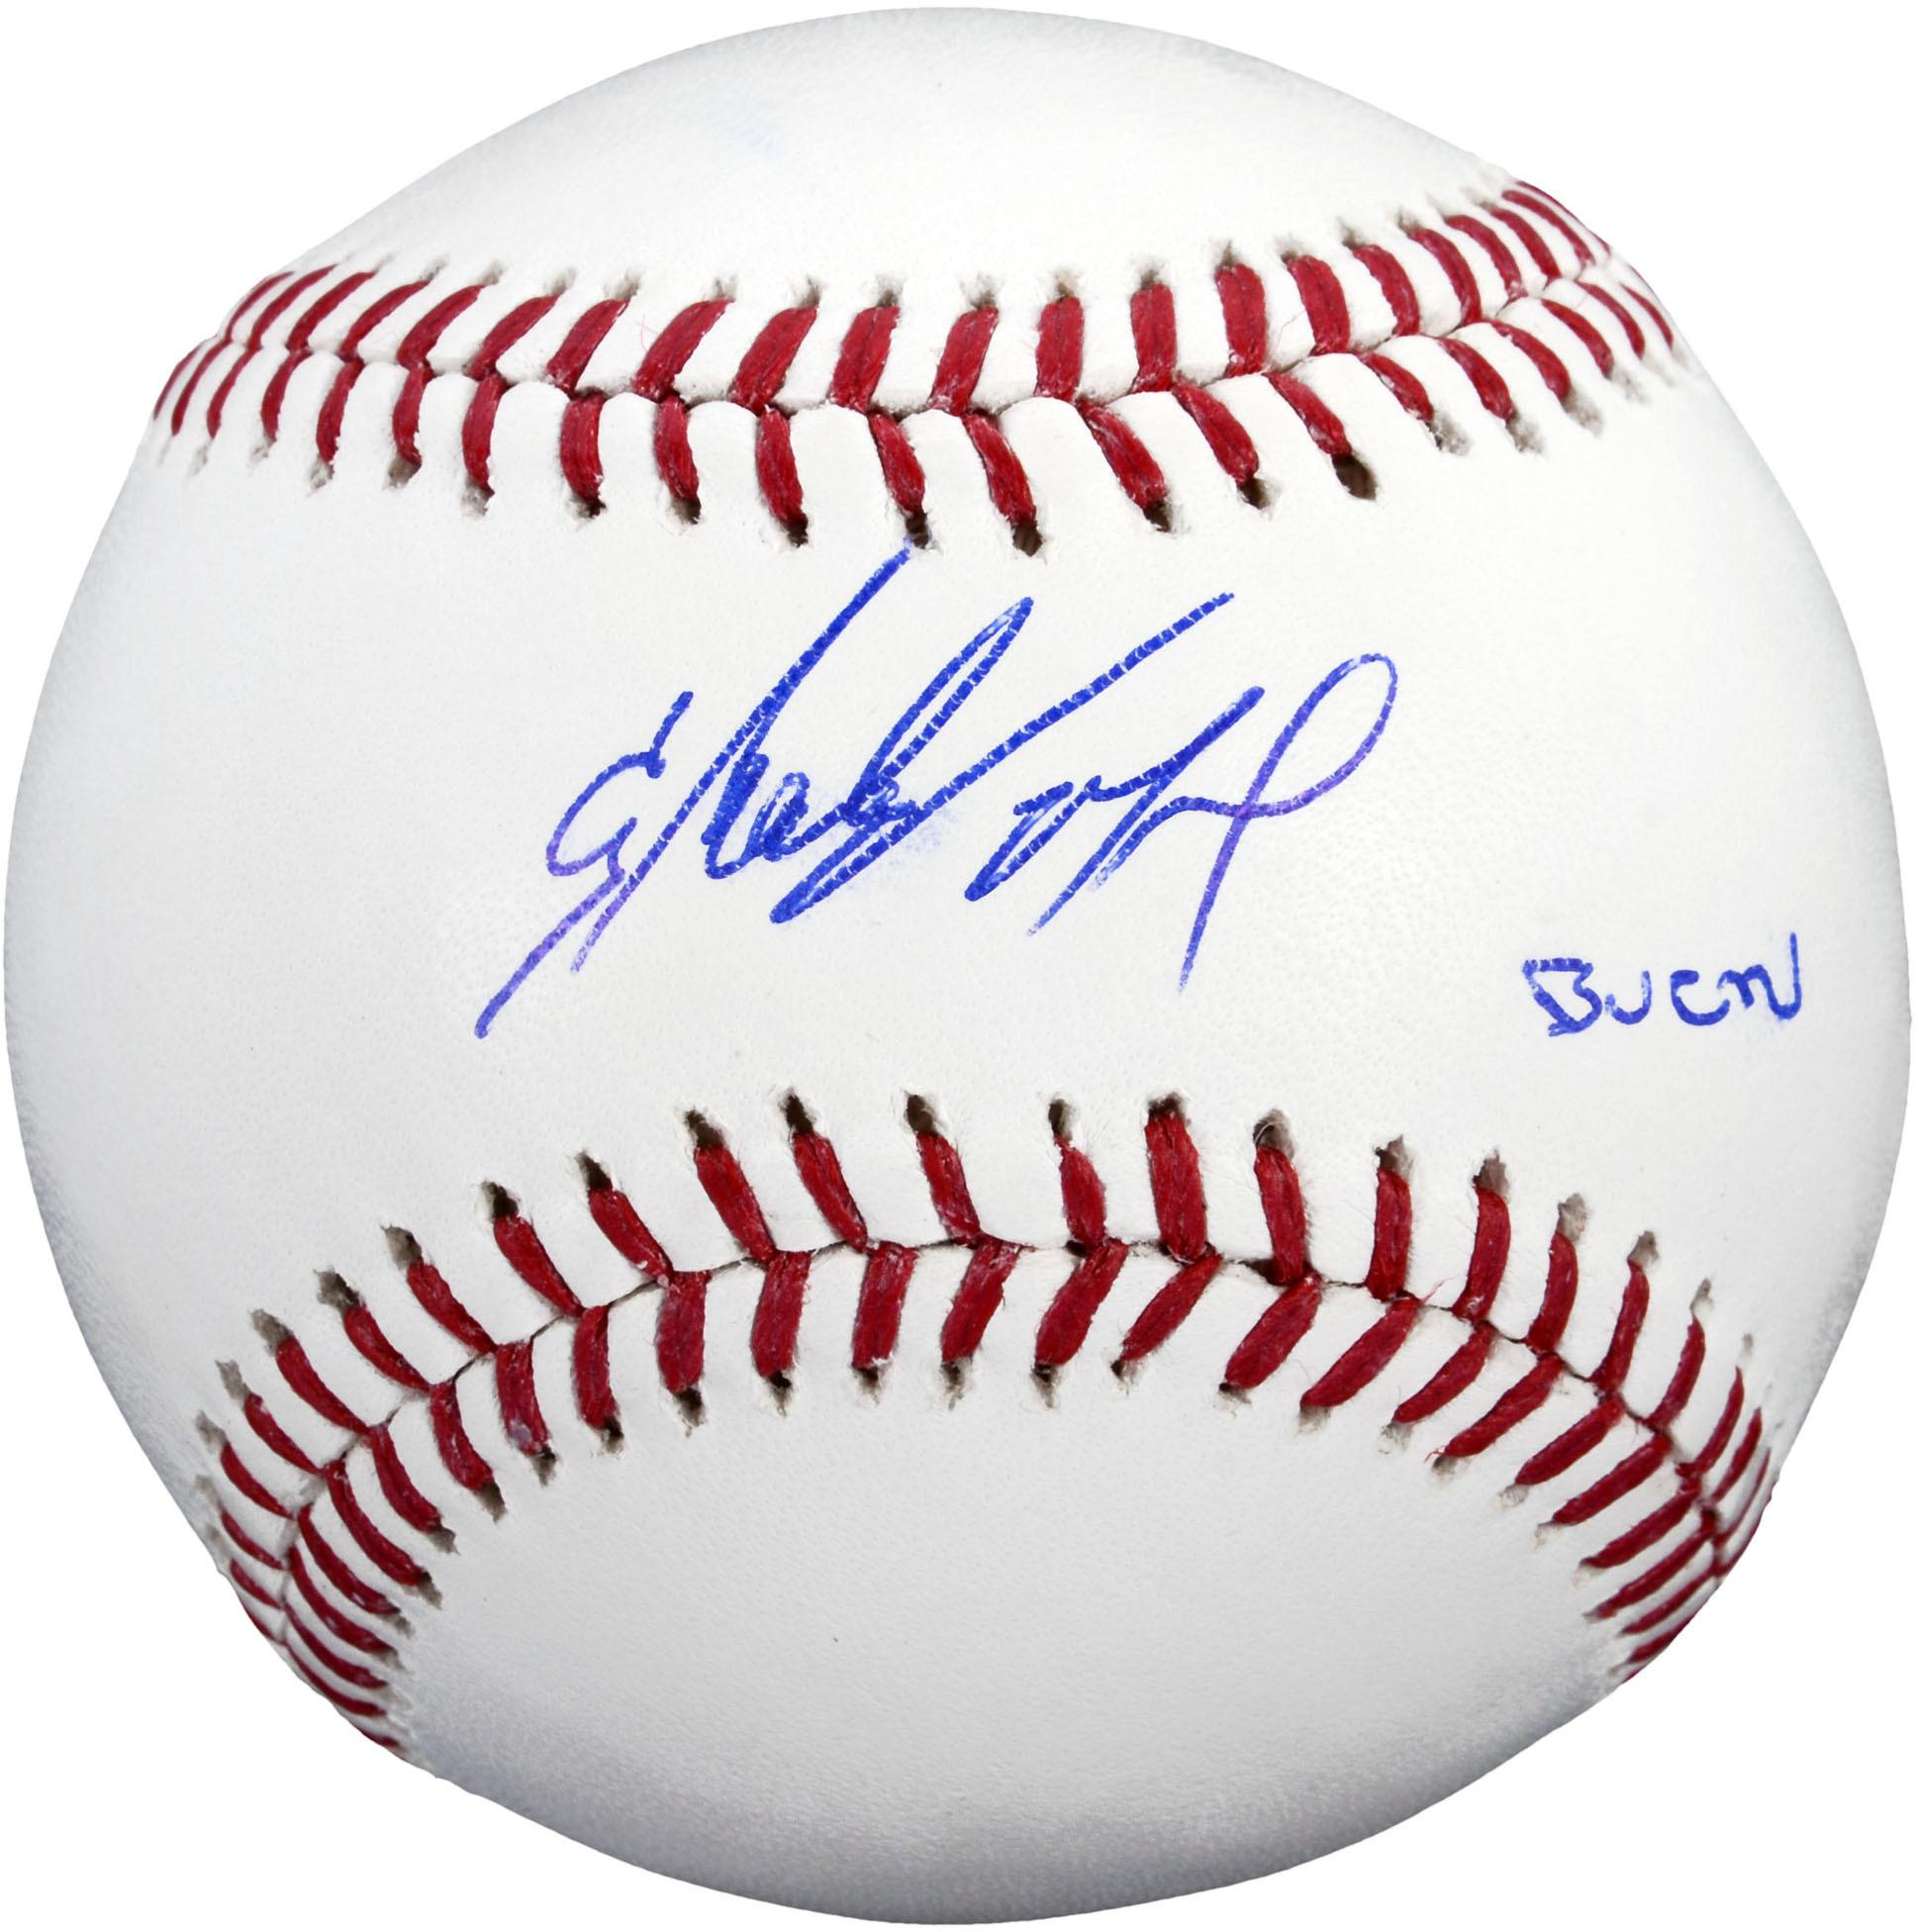 Starling Marte Pittsburgh Pirates Autographed Baseball With Bucn Inscription